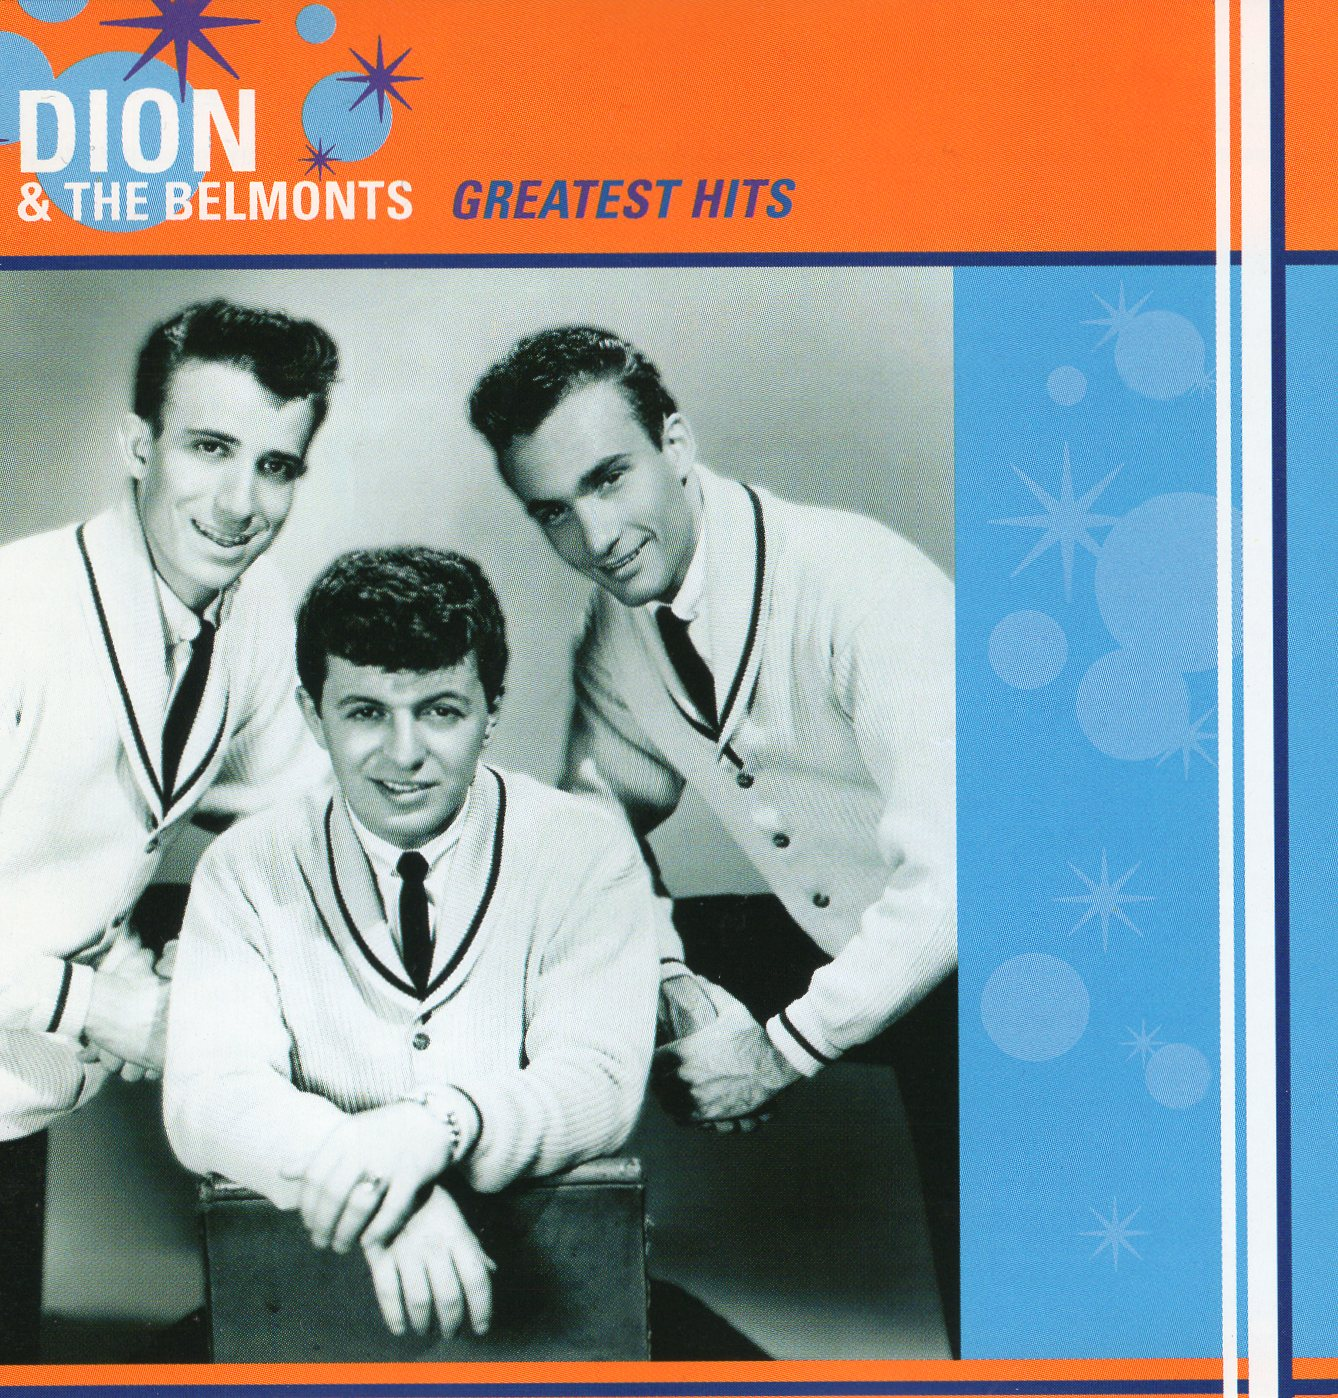 """Dion & The Belmonts Greatest Hits"" Dion & The Belmonts"